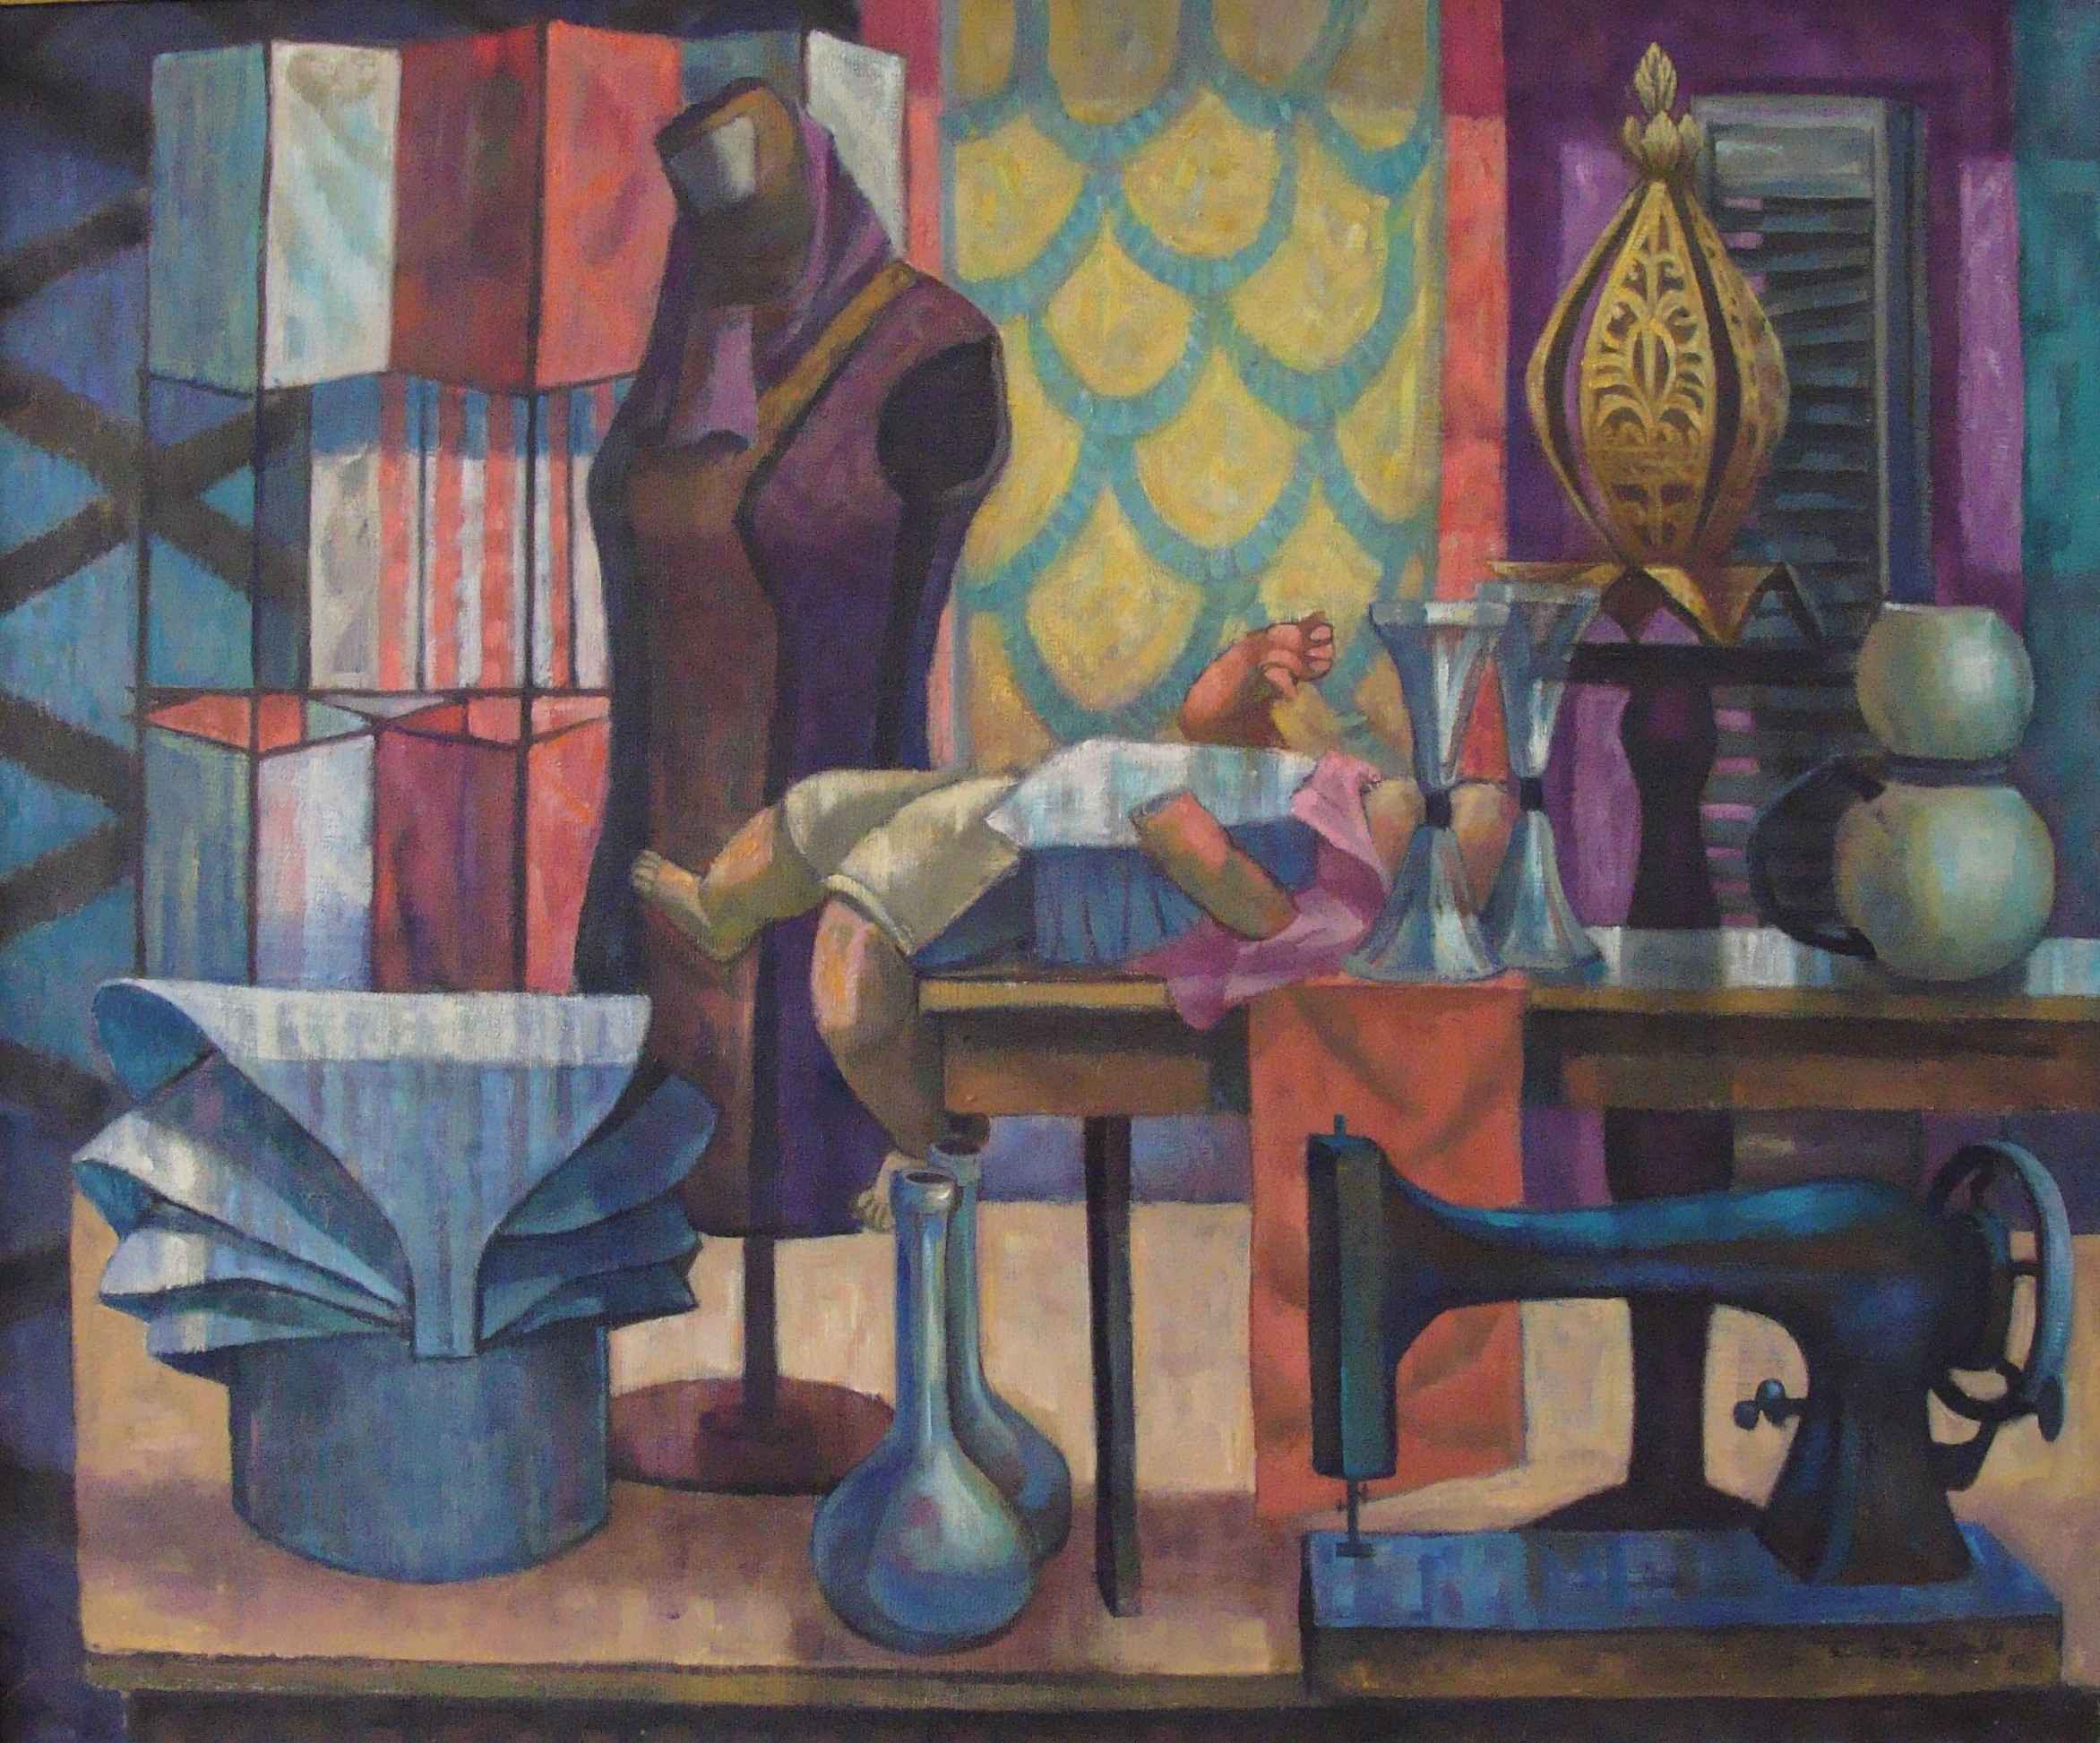 Still Life with Props by Mr. Santos Zingale - Masterpiece Online